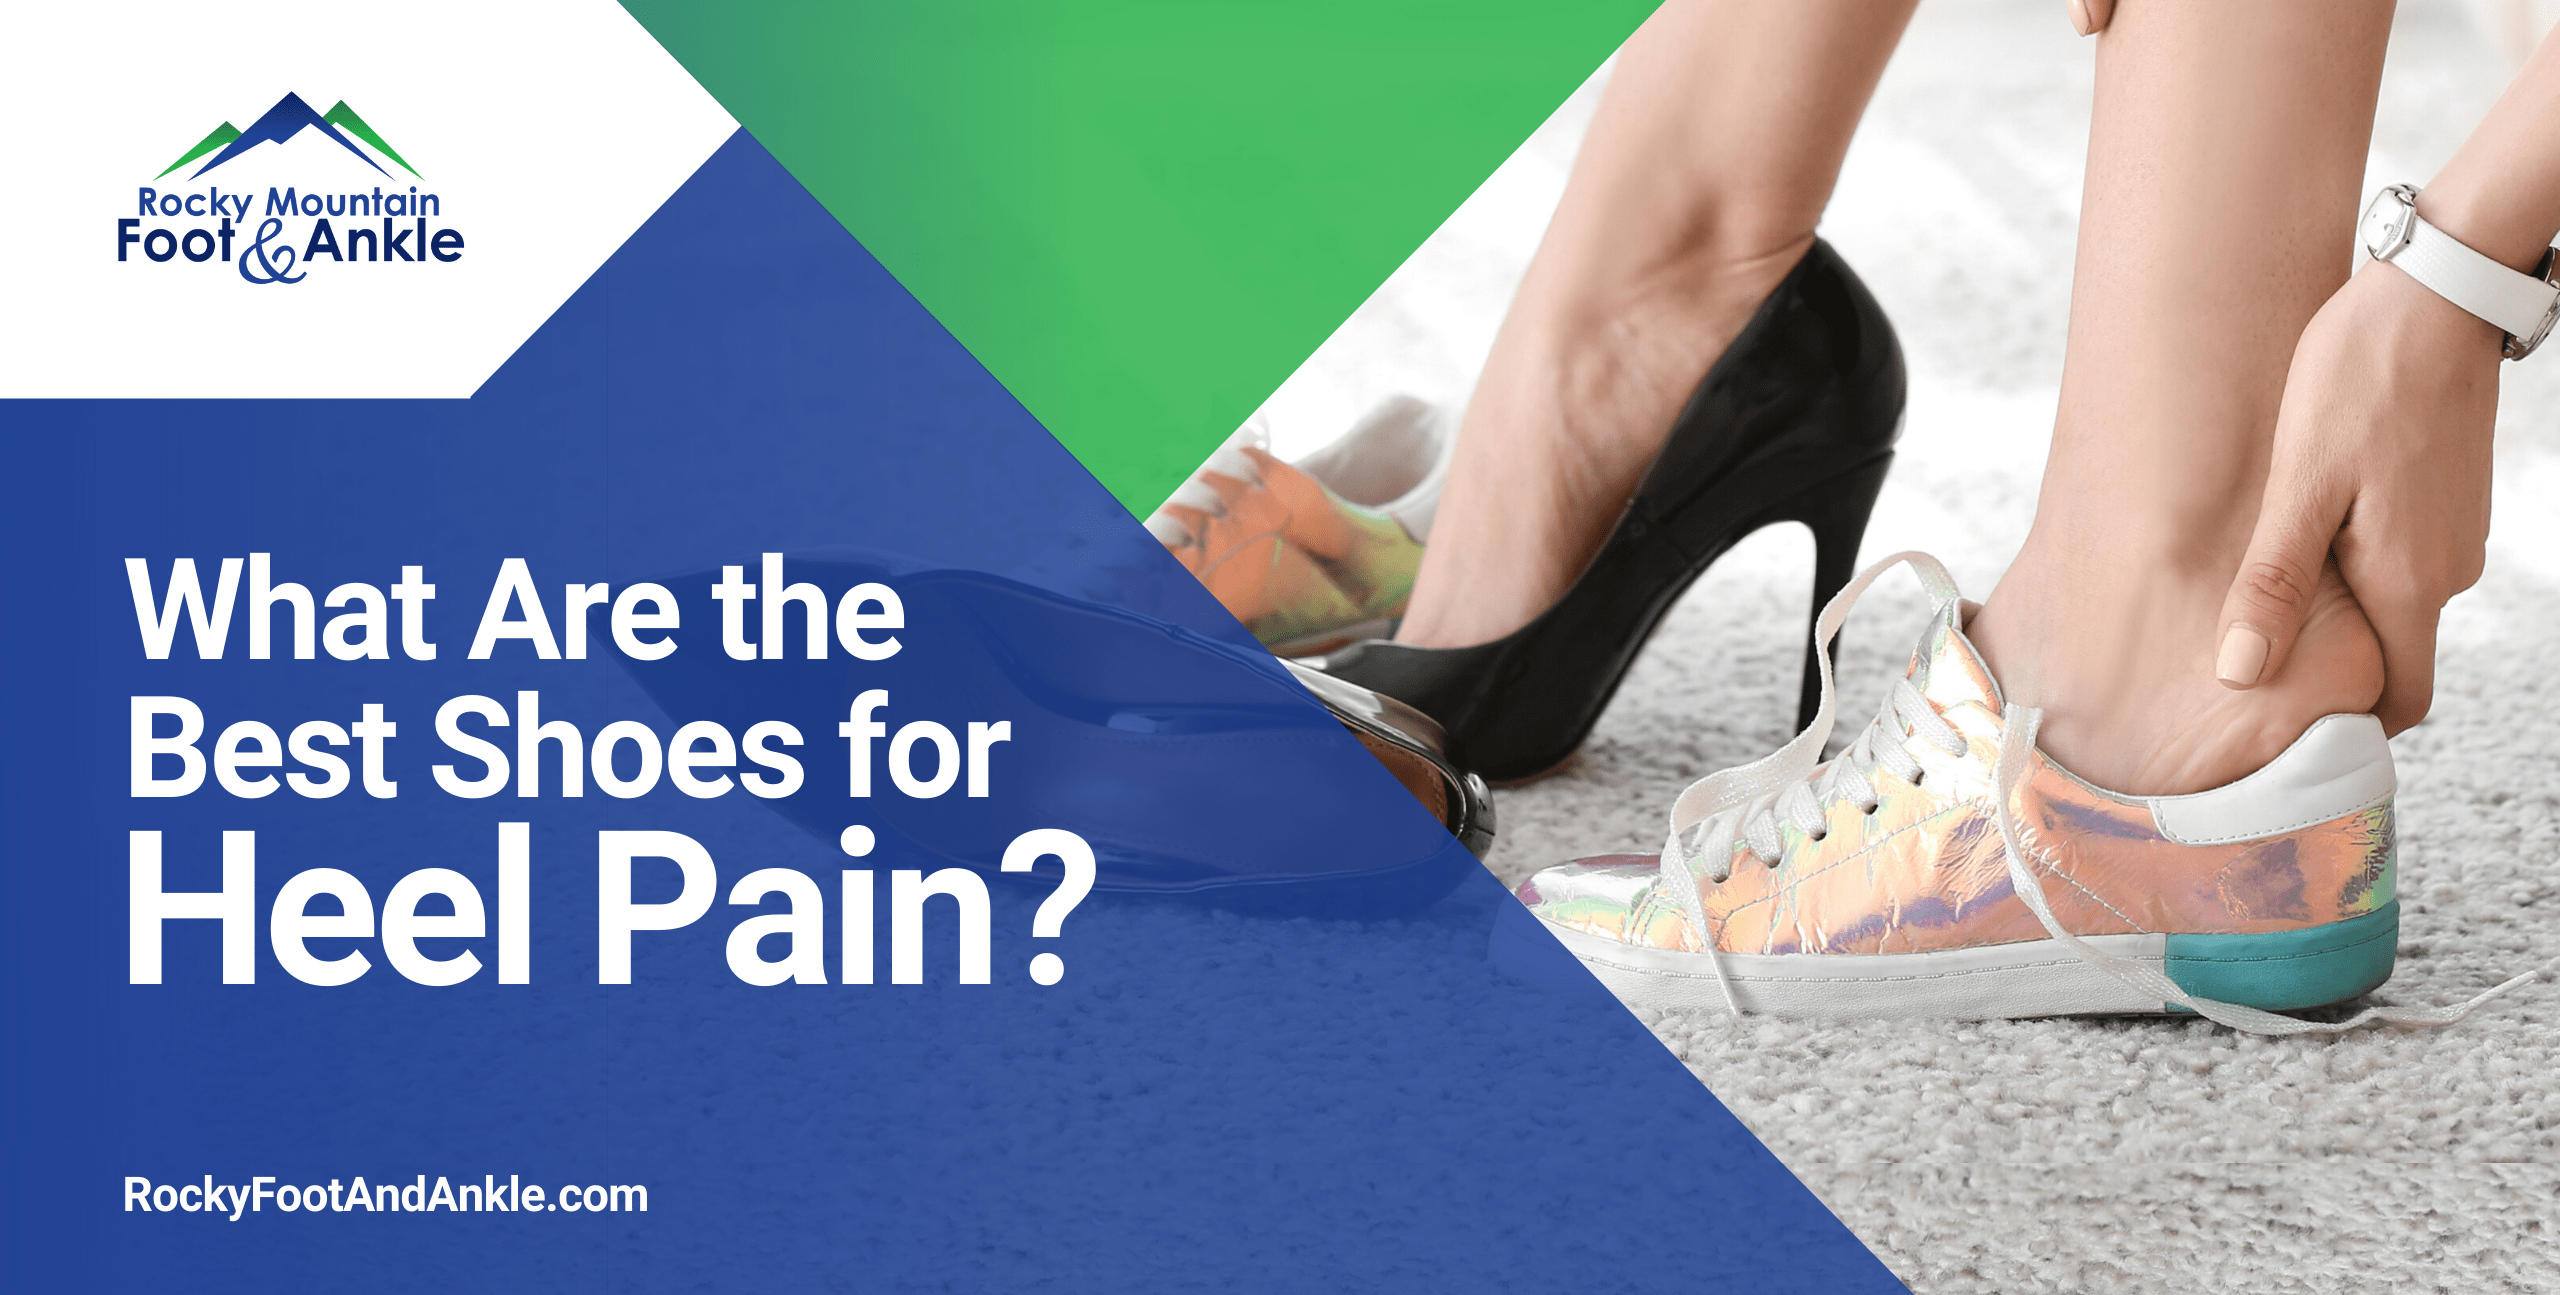 What Are the Best Shoes for Heel Pain? | Blog Graphic Burk 2020 06 15 ShoesHeelPain